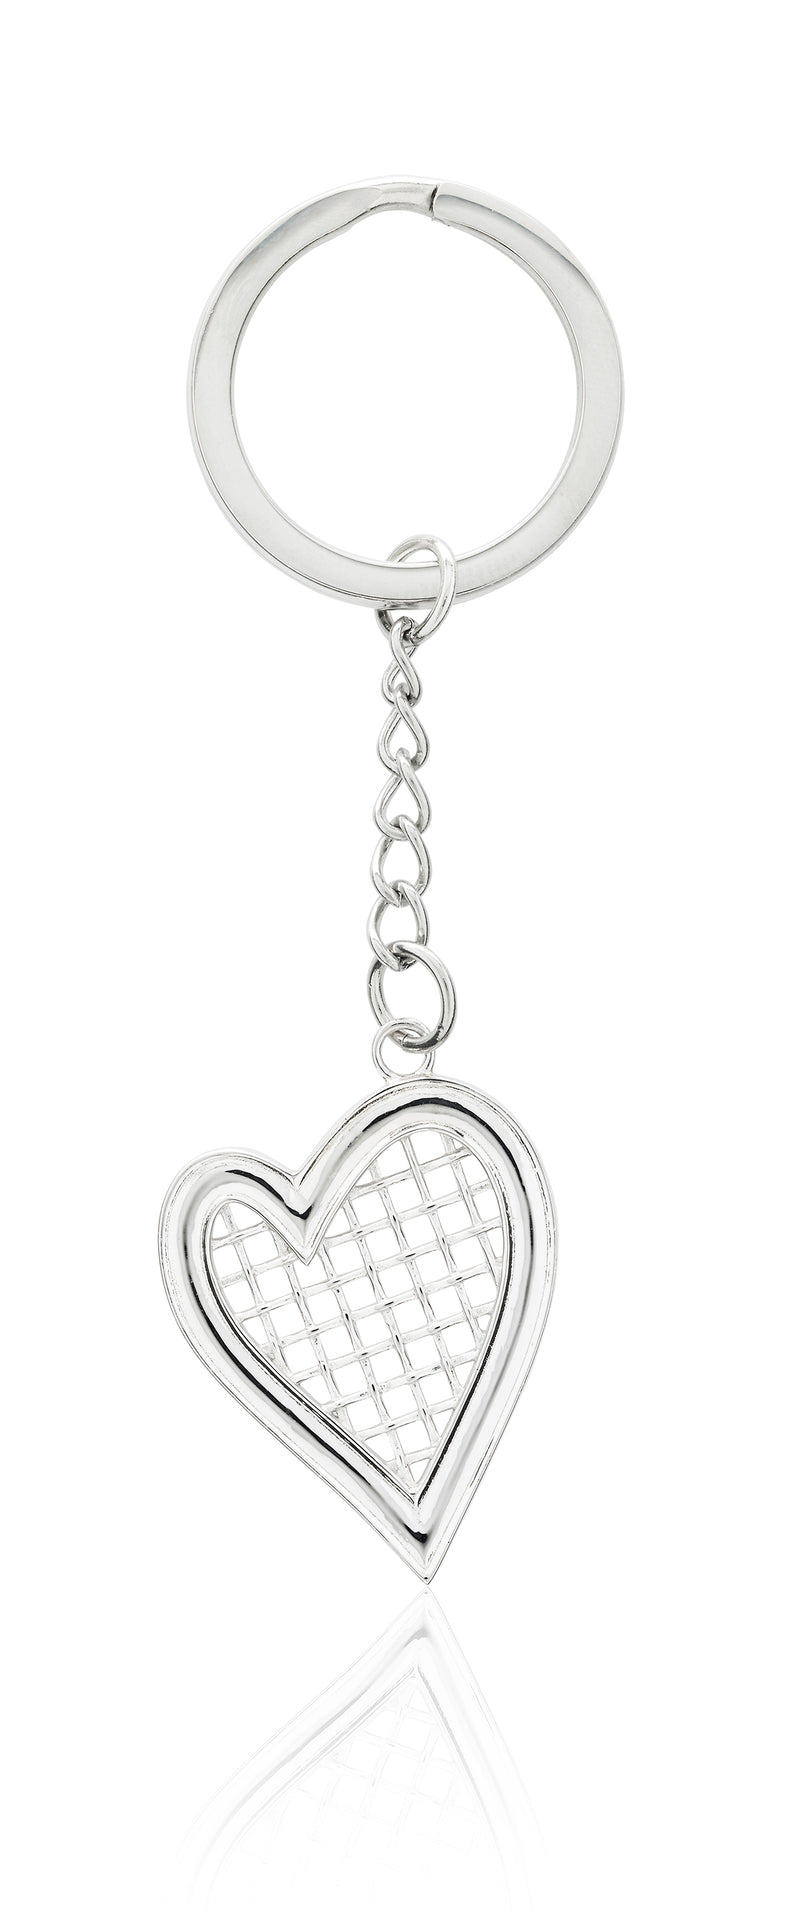 Heart Strings Key Ring and Bag tag Sterling Silver XL